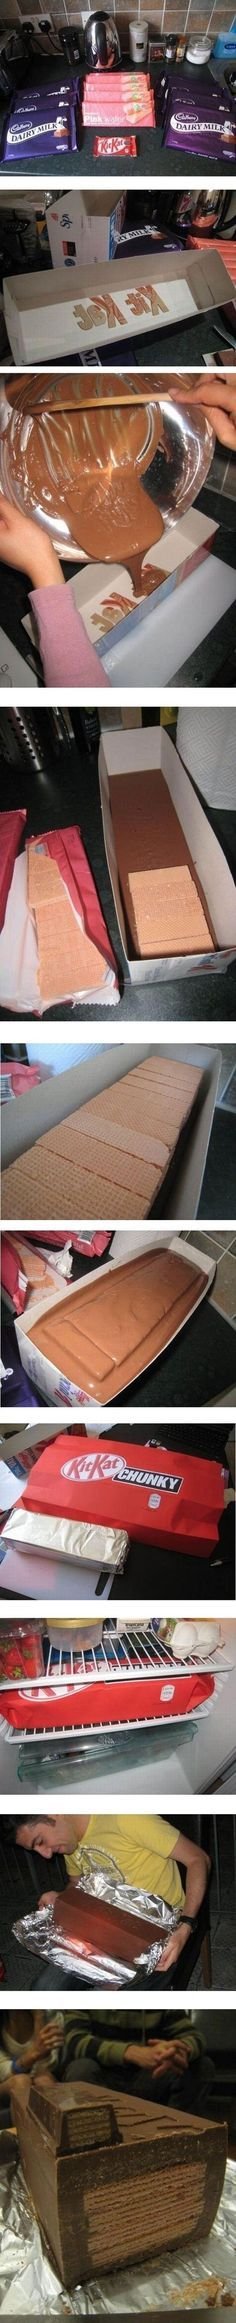 HOW TO MAKE: GIANT KIT KAT BAR ..... *gasp* This is awesome!! Want to make for anniversary gift!!